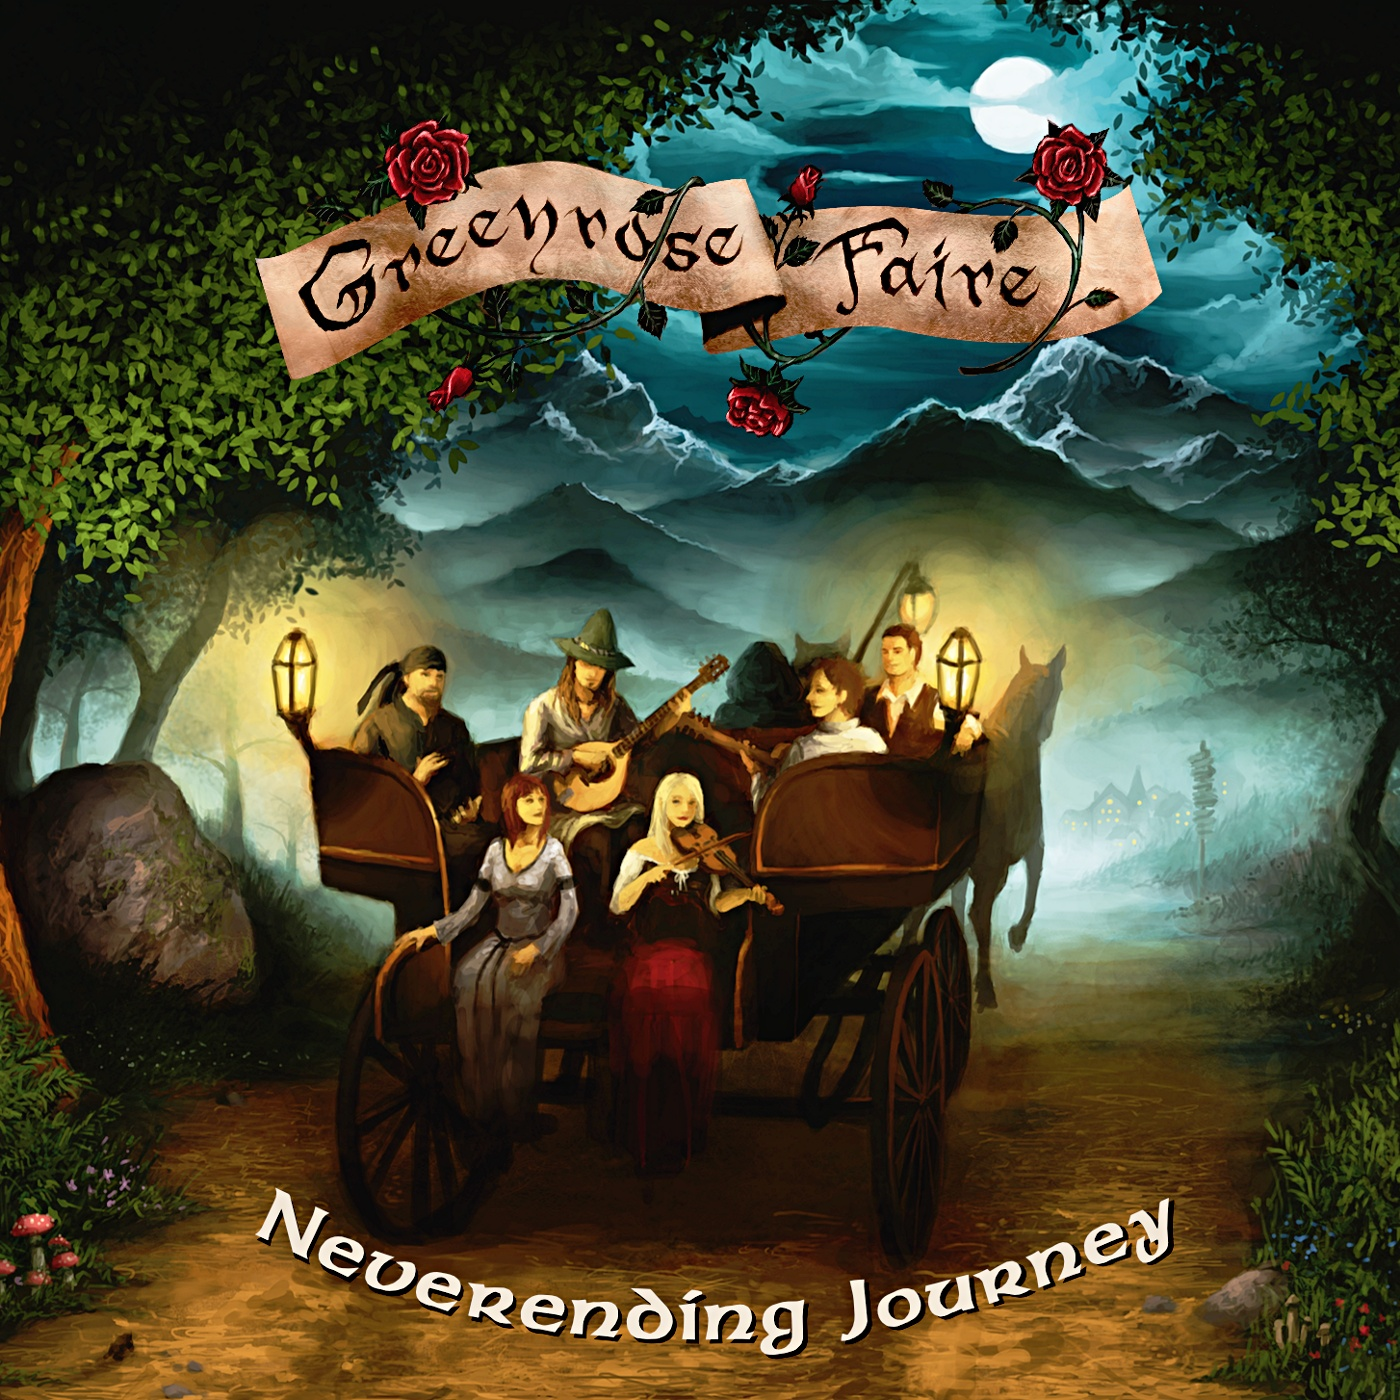 Greenrose Fair: Neverending Journey